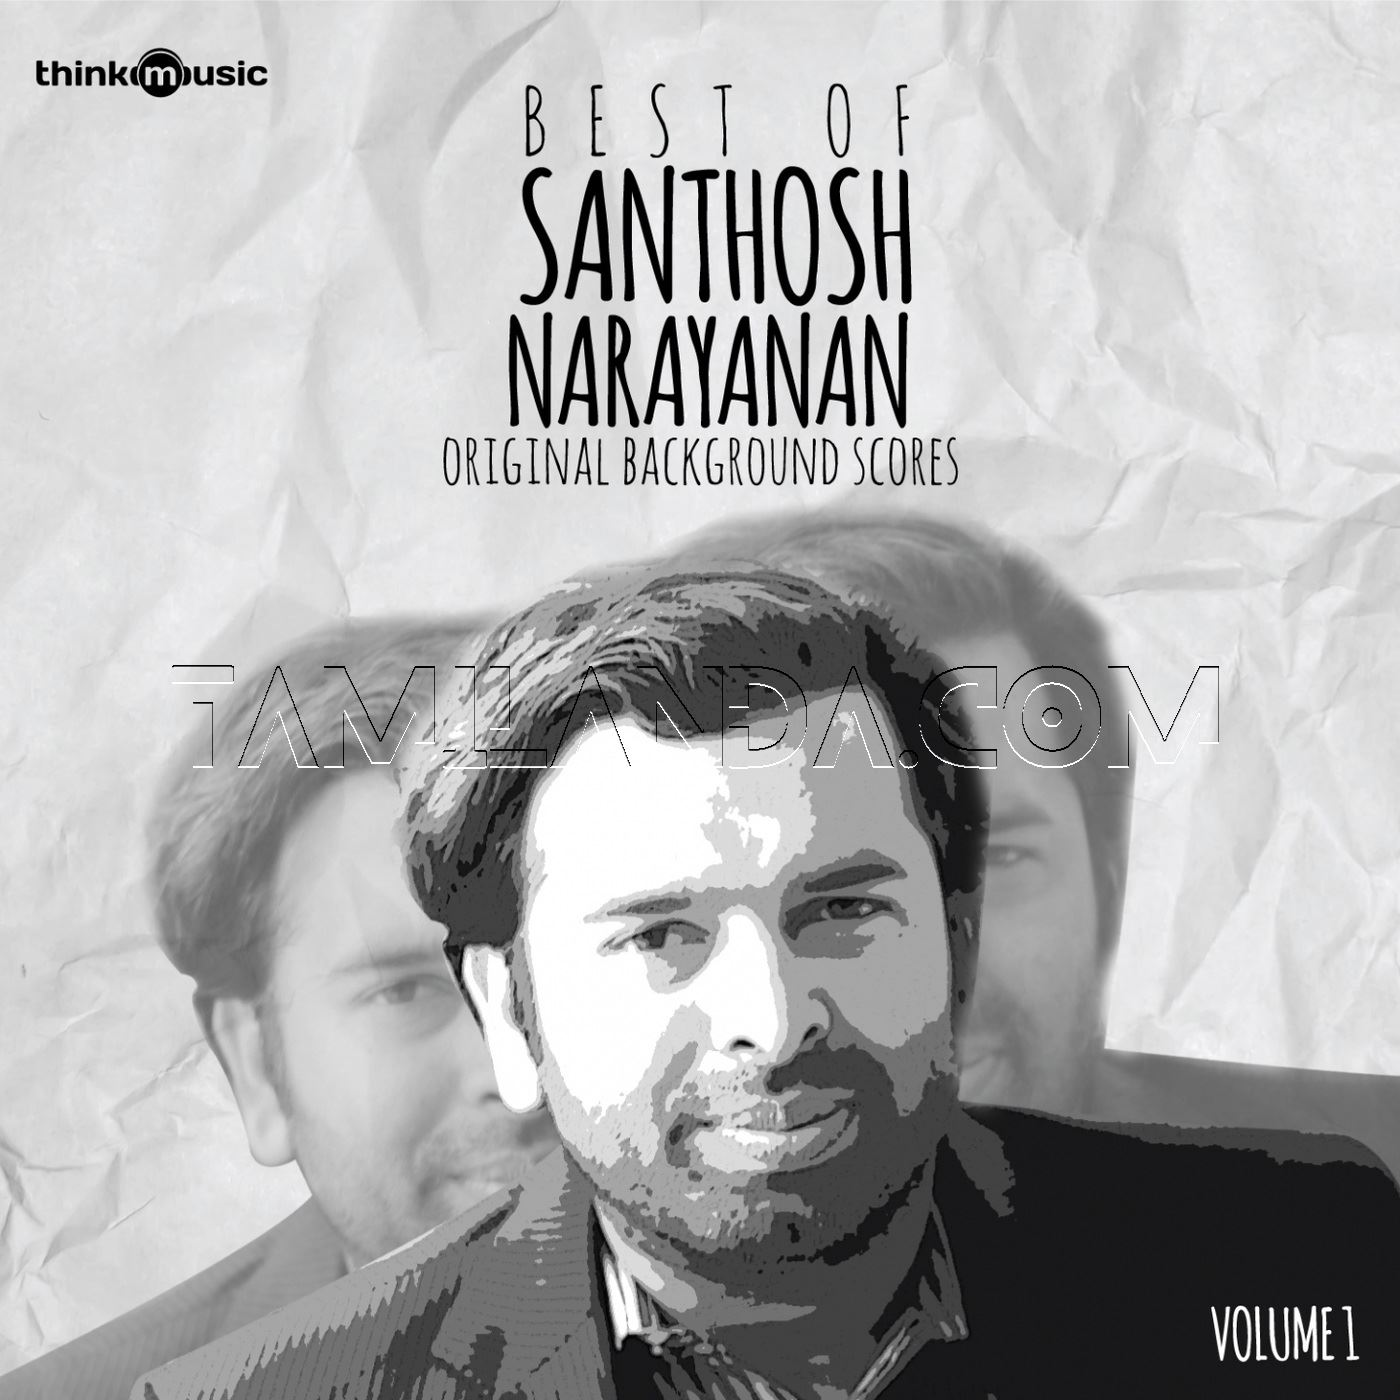 Best of Santhosh Narayanan, Vol. 1 (Background Scores) FLAC Songs